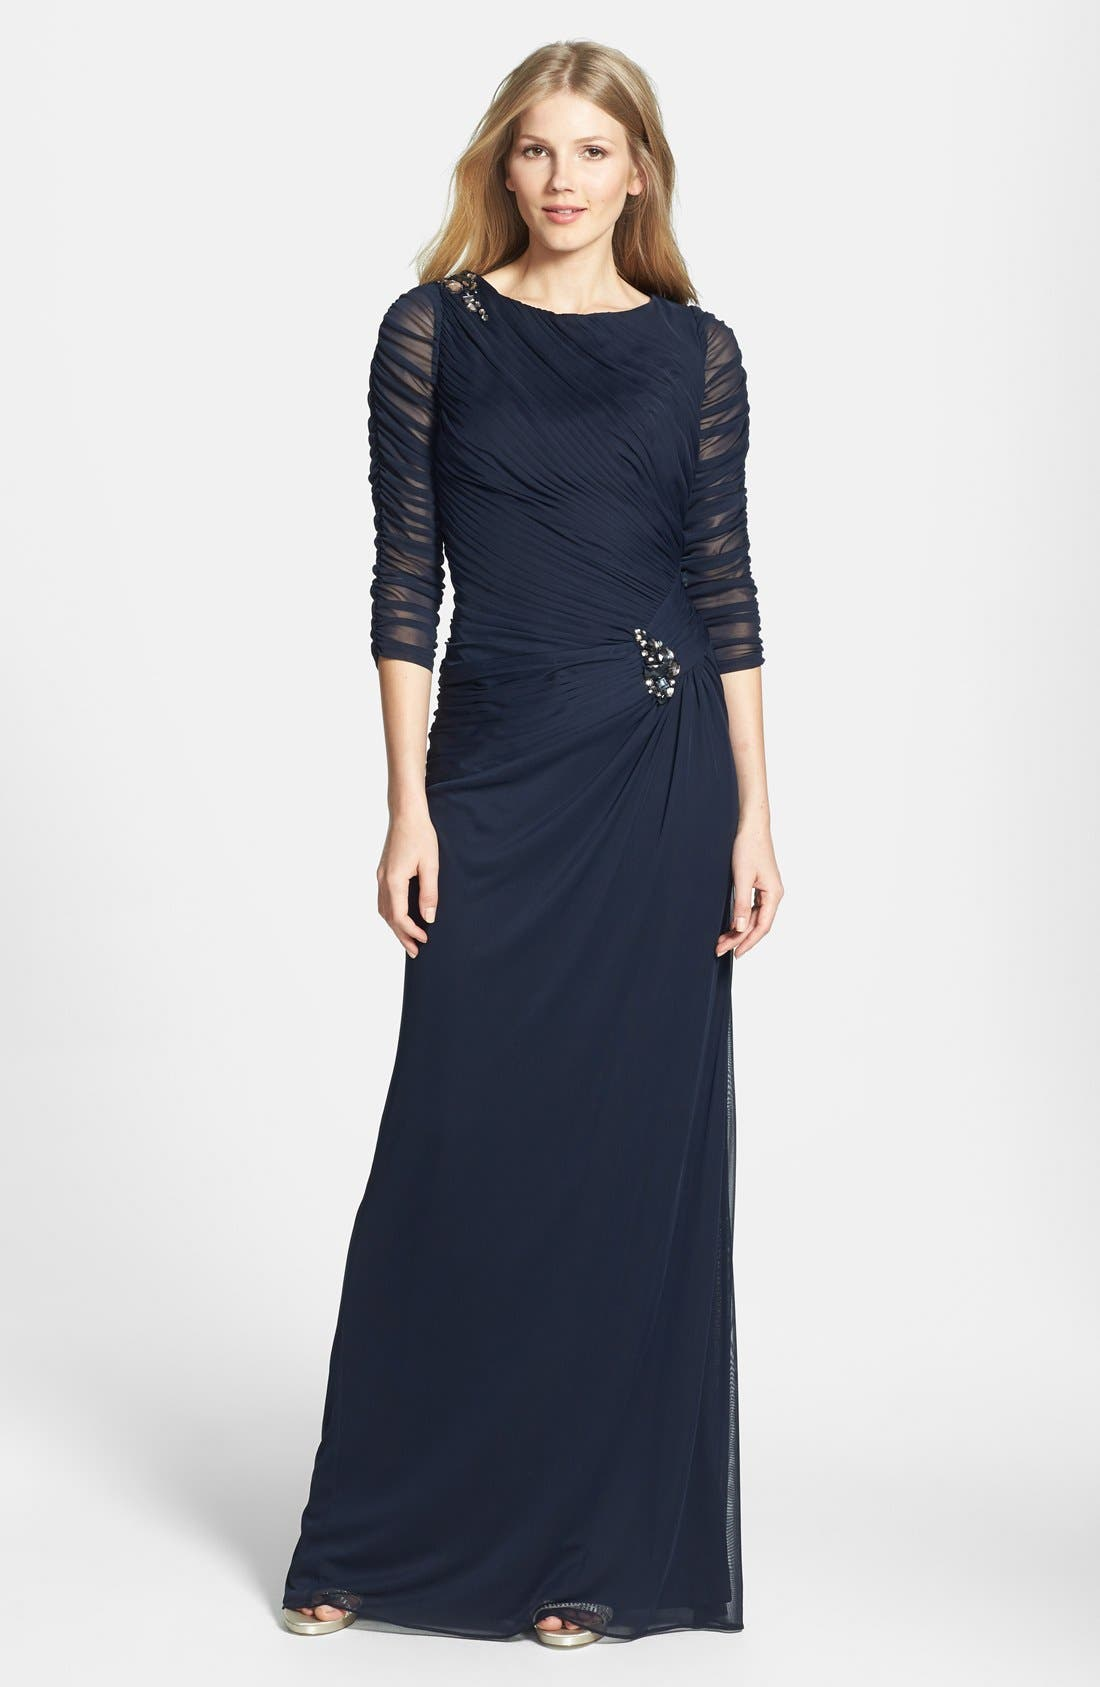 Alternate Image 1 Selected - Adrianna Papell Sheer Sleeve Ruched Mesh Gown (Regular & Petite)